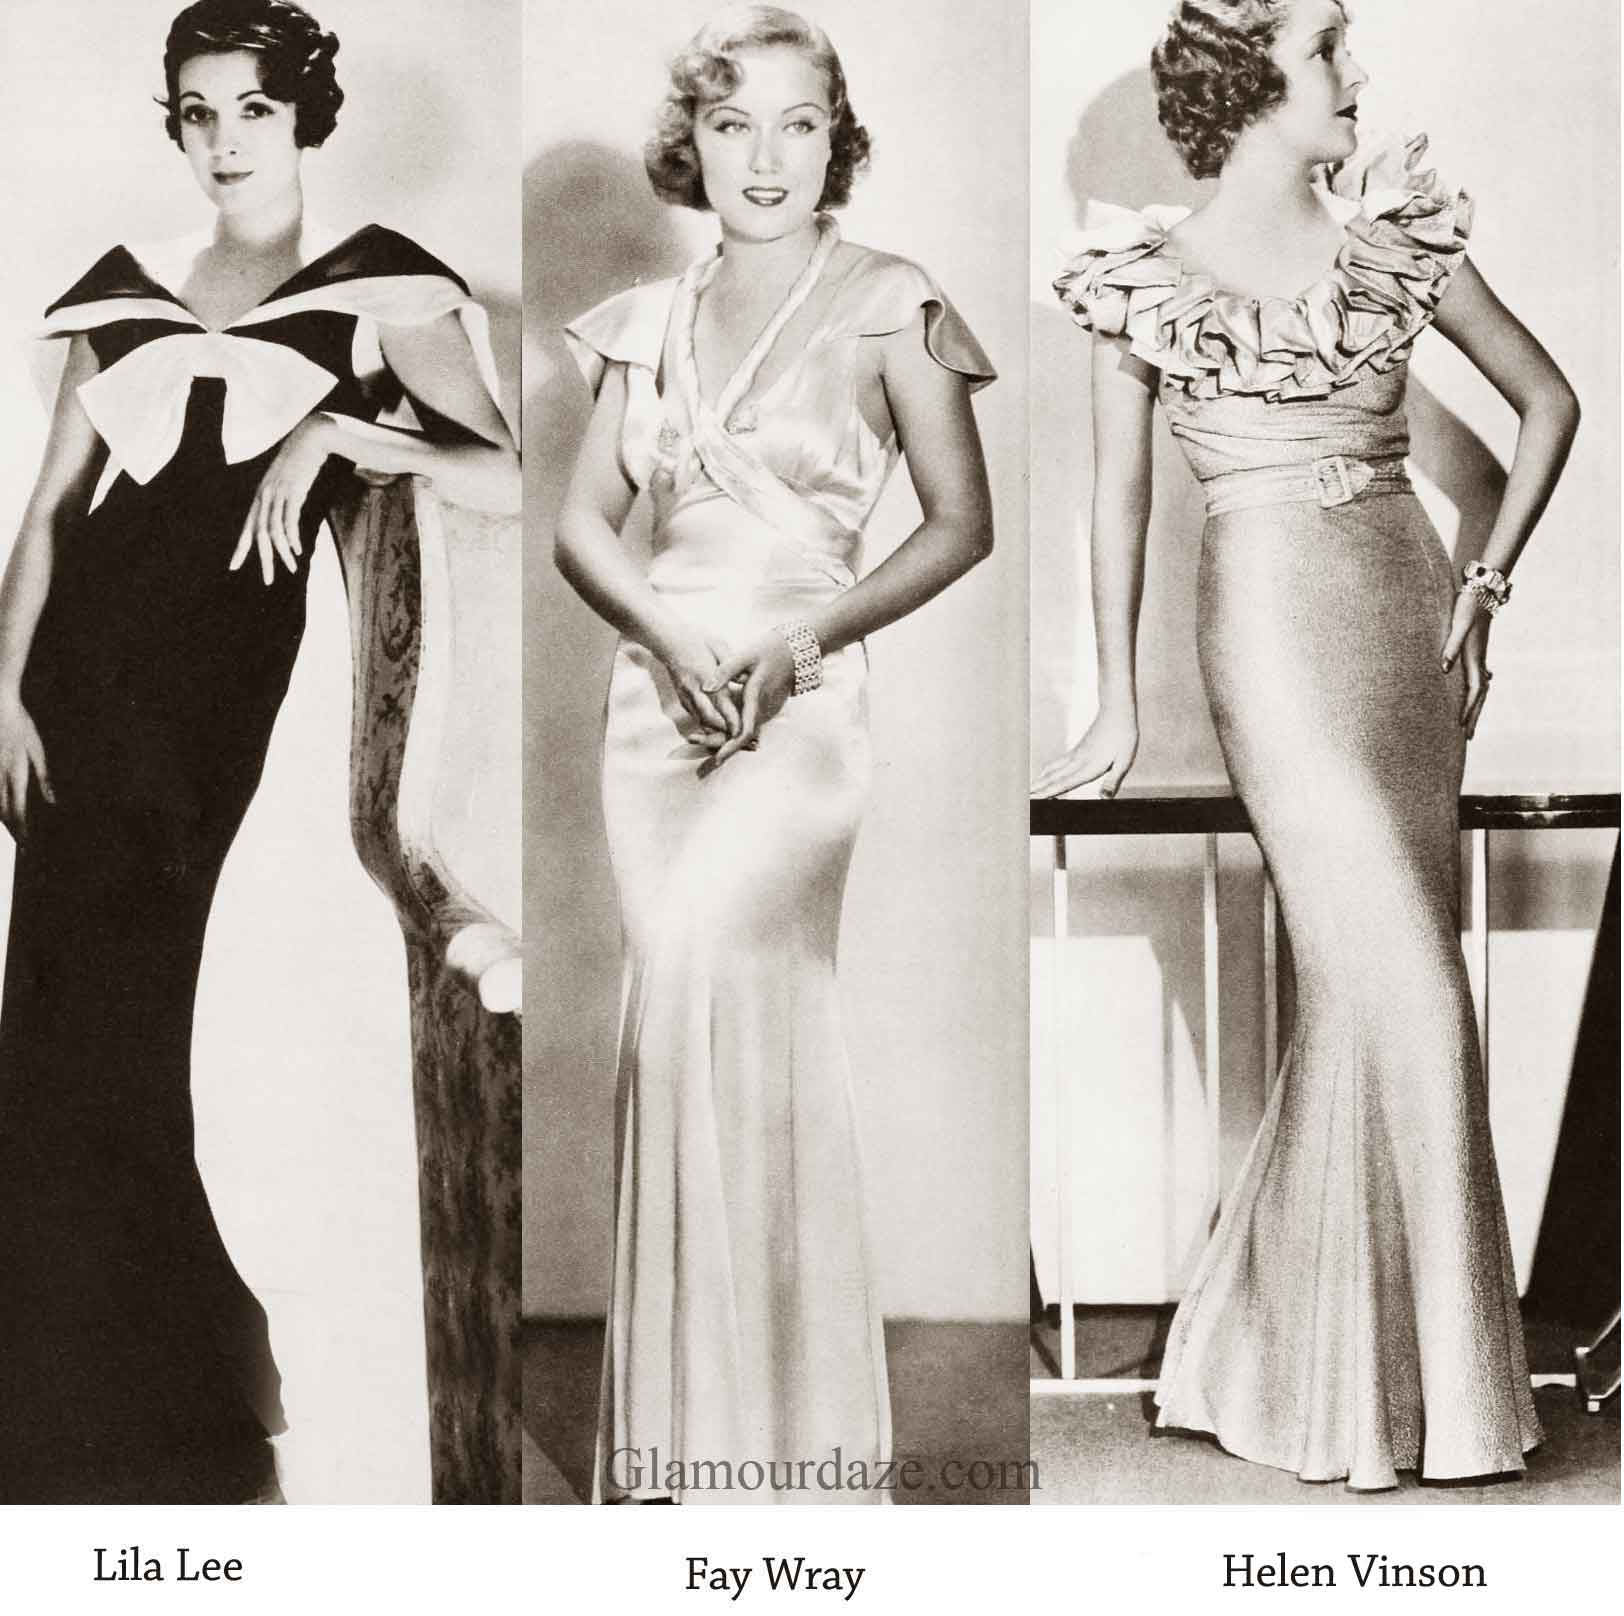 Excellent The Women Wore Dresses And Kept Their Hair Close To Their Head Fur Was In And So Were Floral Patterns Makeup Was Chic And Shoulder Pads Were Very Important Until The Late 1930s Although Hats Were Still Popular For Women, They Were